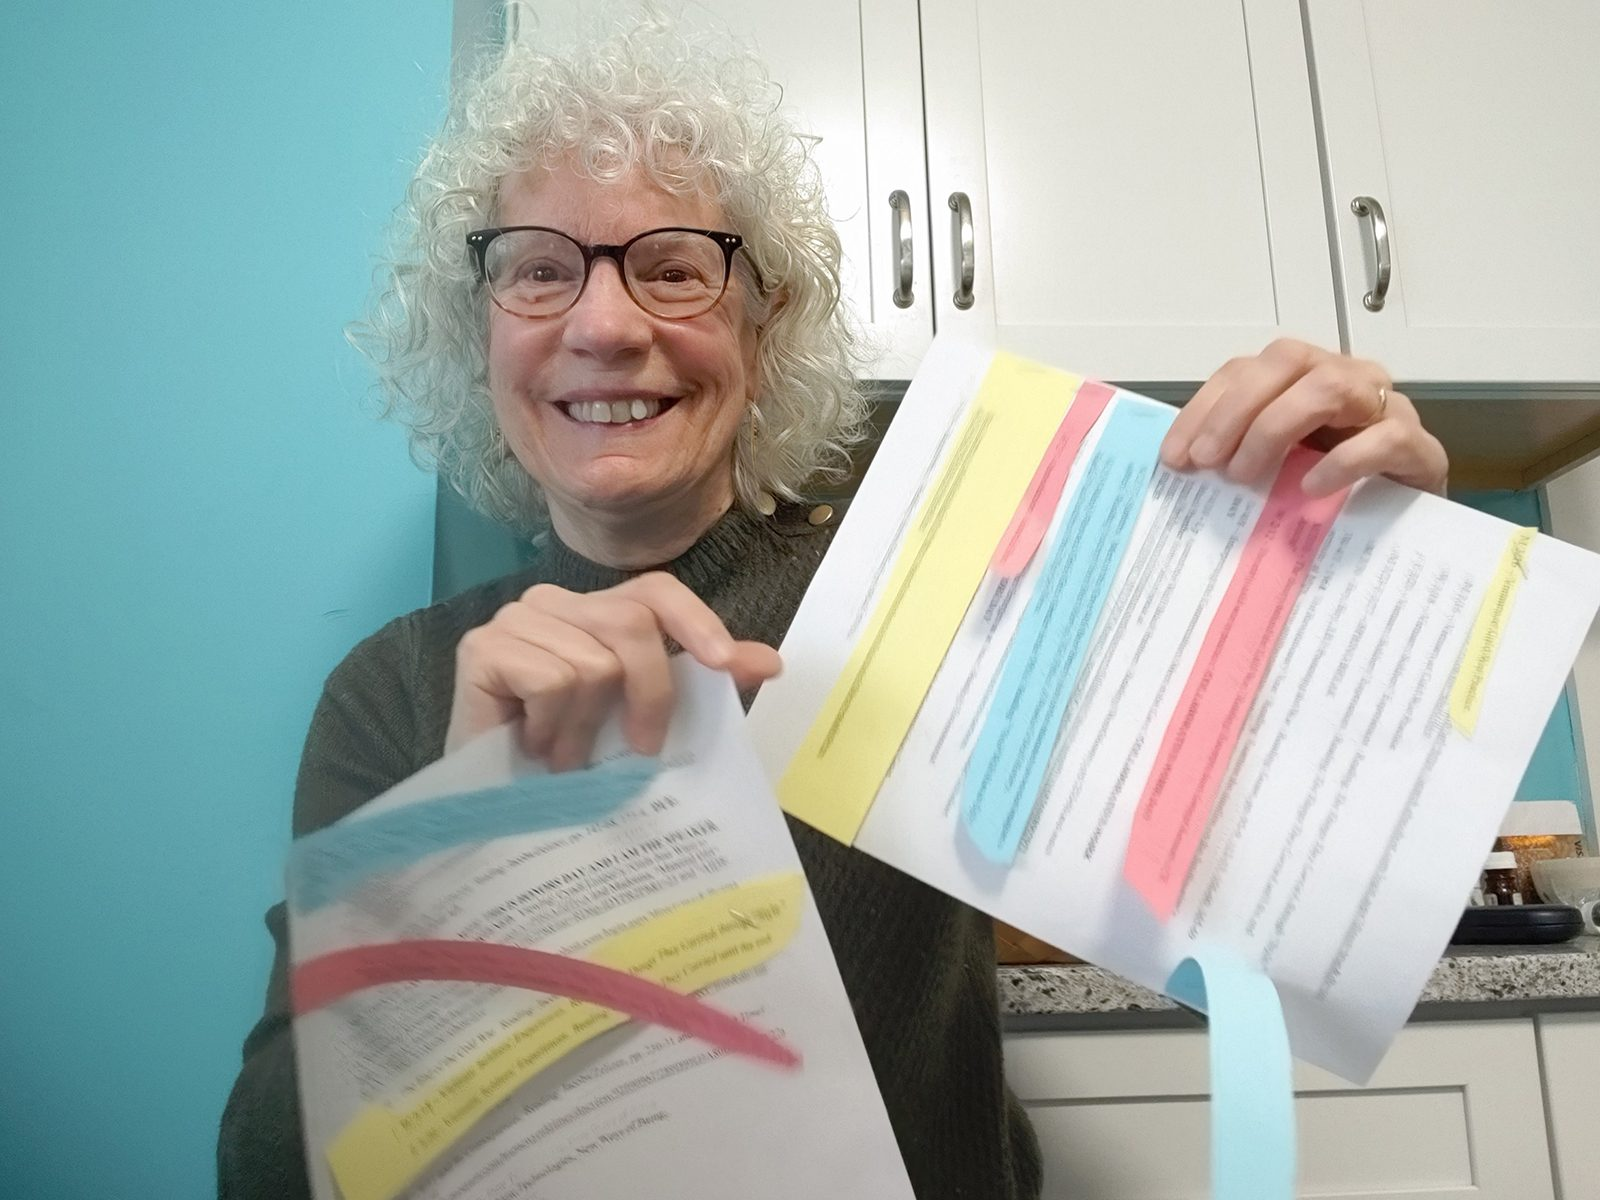 Professor of History Judy Kutulas holds a paper with multicolored additions and corrections stapled to the pages.